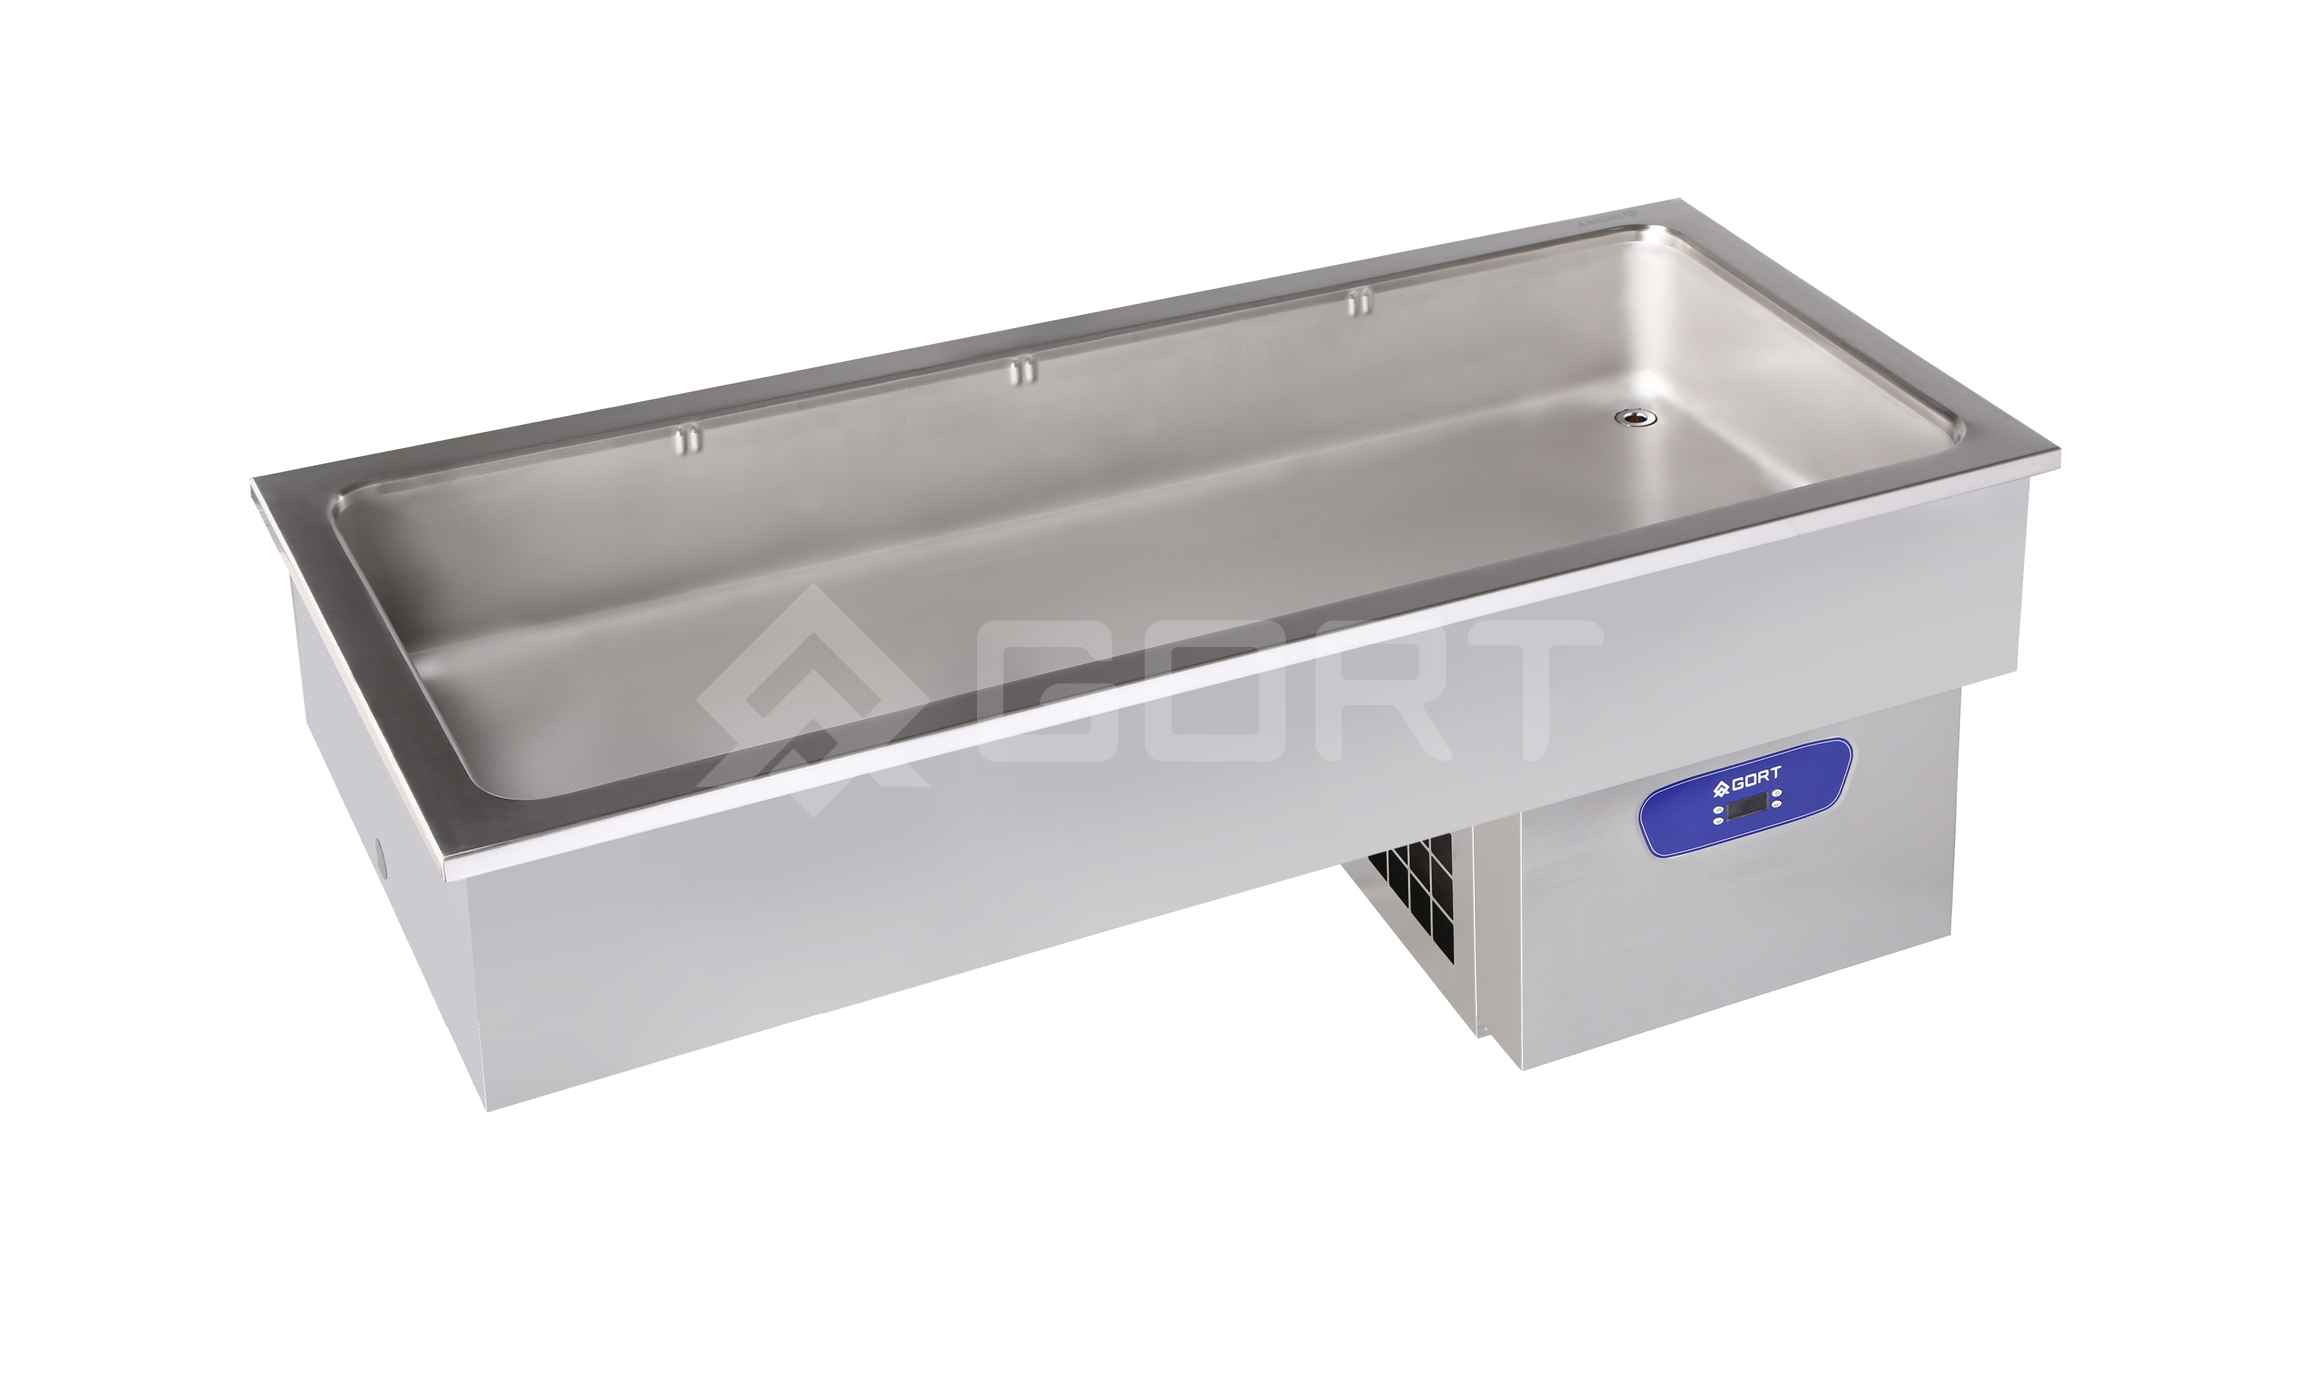 Refrigerated static well DROP-IN, 4 x GN1/1